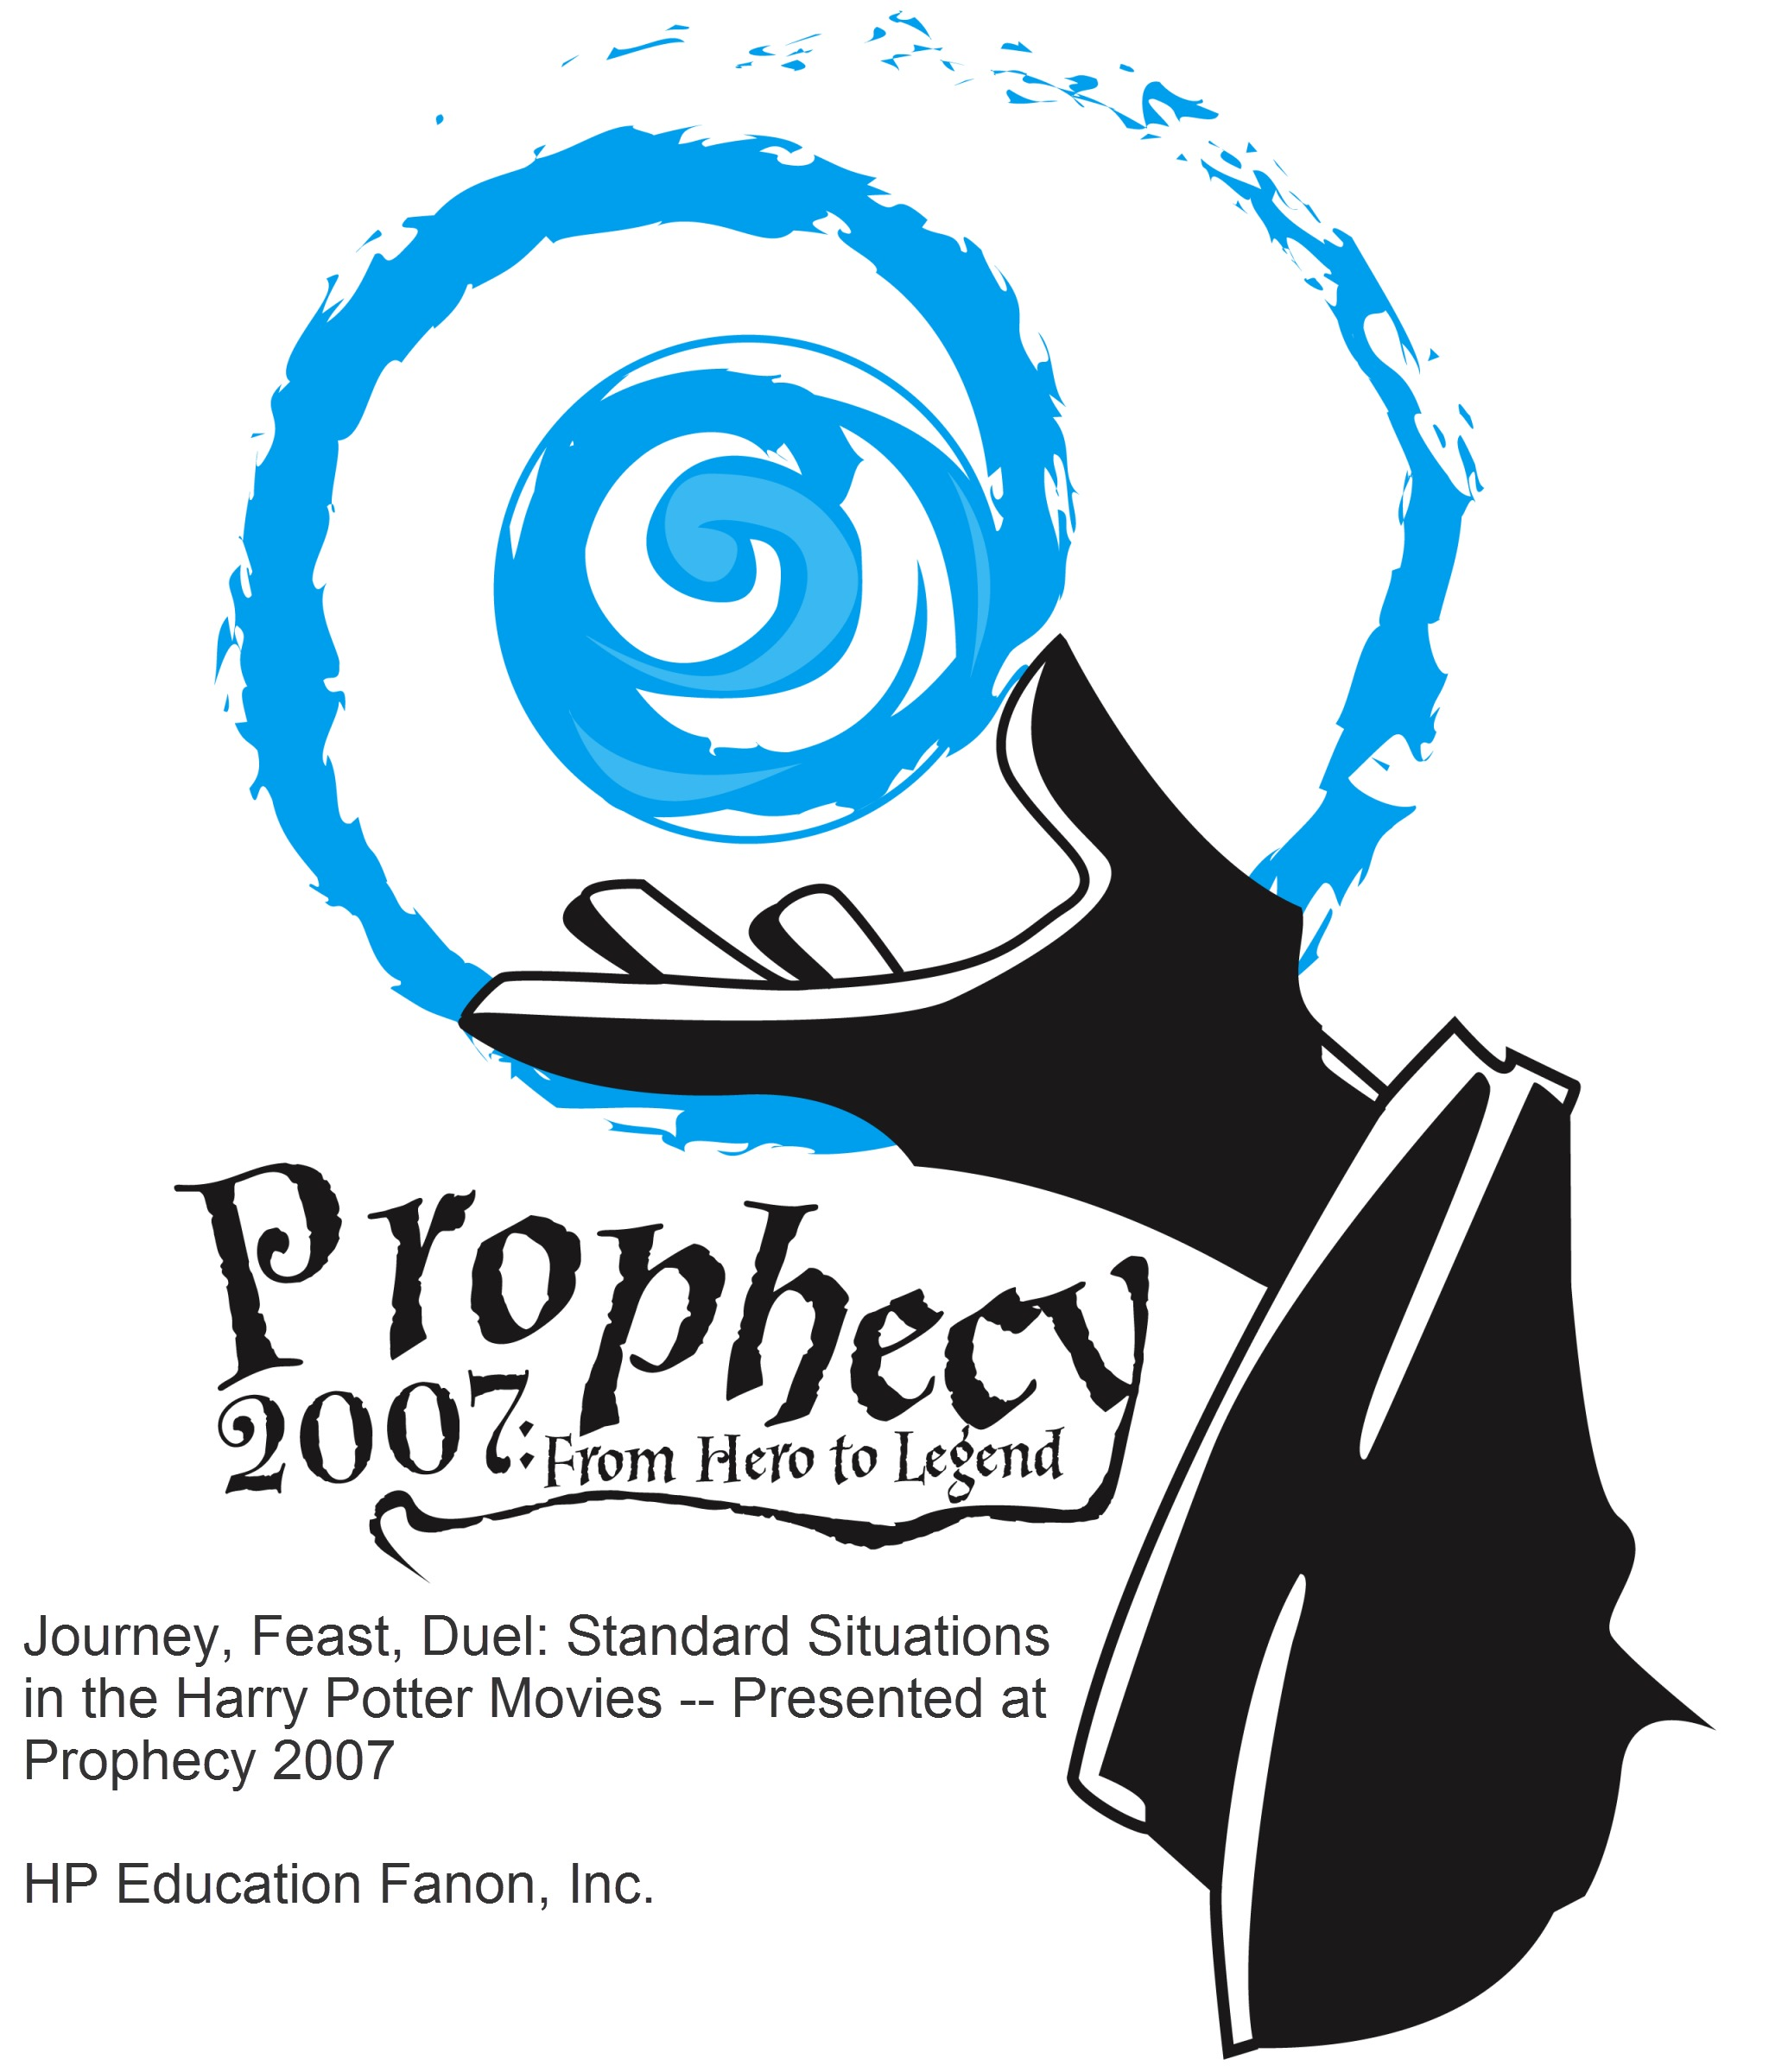 Journey, Feast, Duel: Standard Situations in the Harry Potter Movies -- Presented at Prophecy 2007